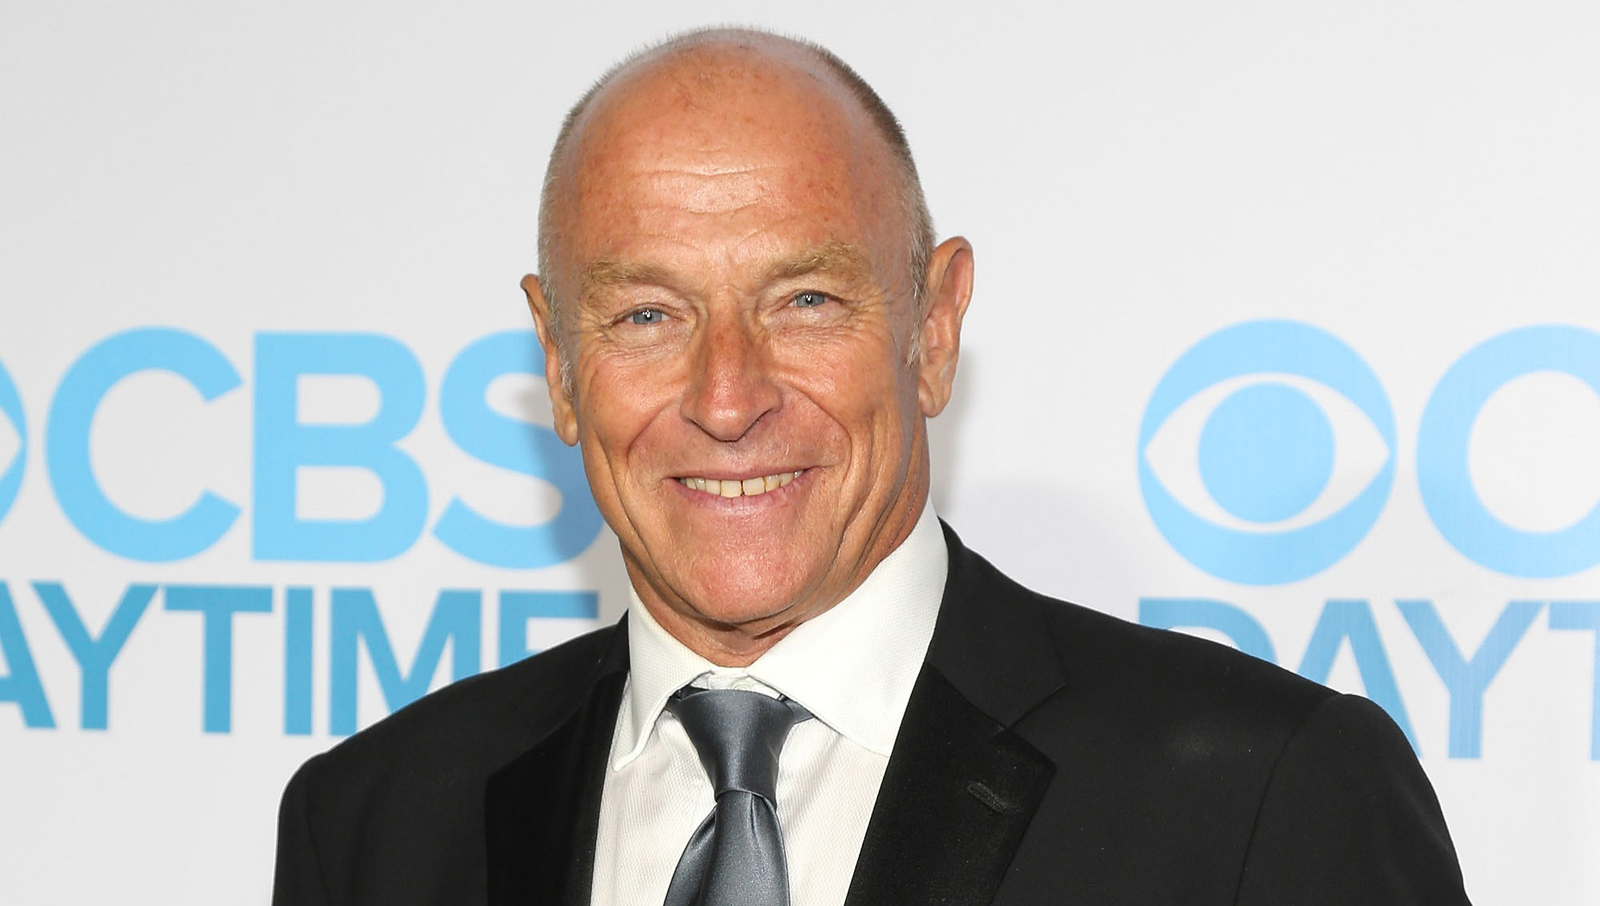 Corbin Bernsen is perhaps best known for his role in the hit '80s TV drama L.A. Law, but we bet you didn't realize he was yet another victim of Green Card star Andie MacDowell! In 2010, the Hollywood actress dragged a screaming Bernsen into the trunk of her car before driving him out into the Mojave Desert and shooting him in the head.